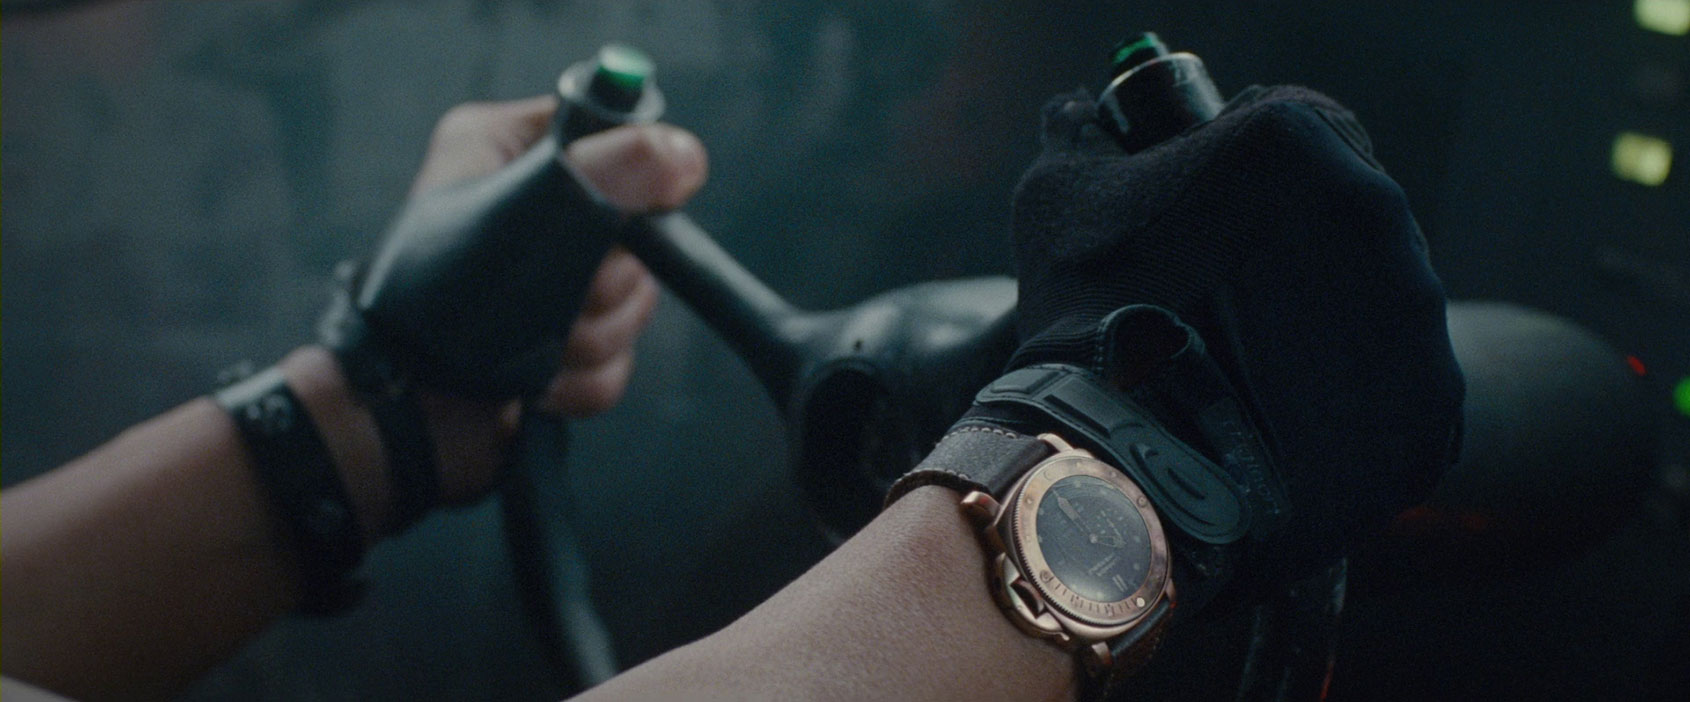 panerai central watches onscreen appearances of a famous